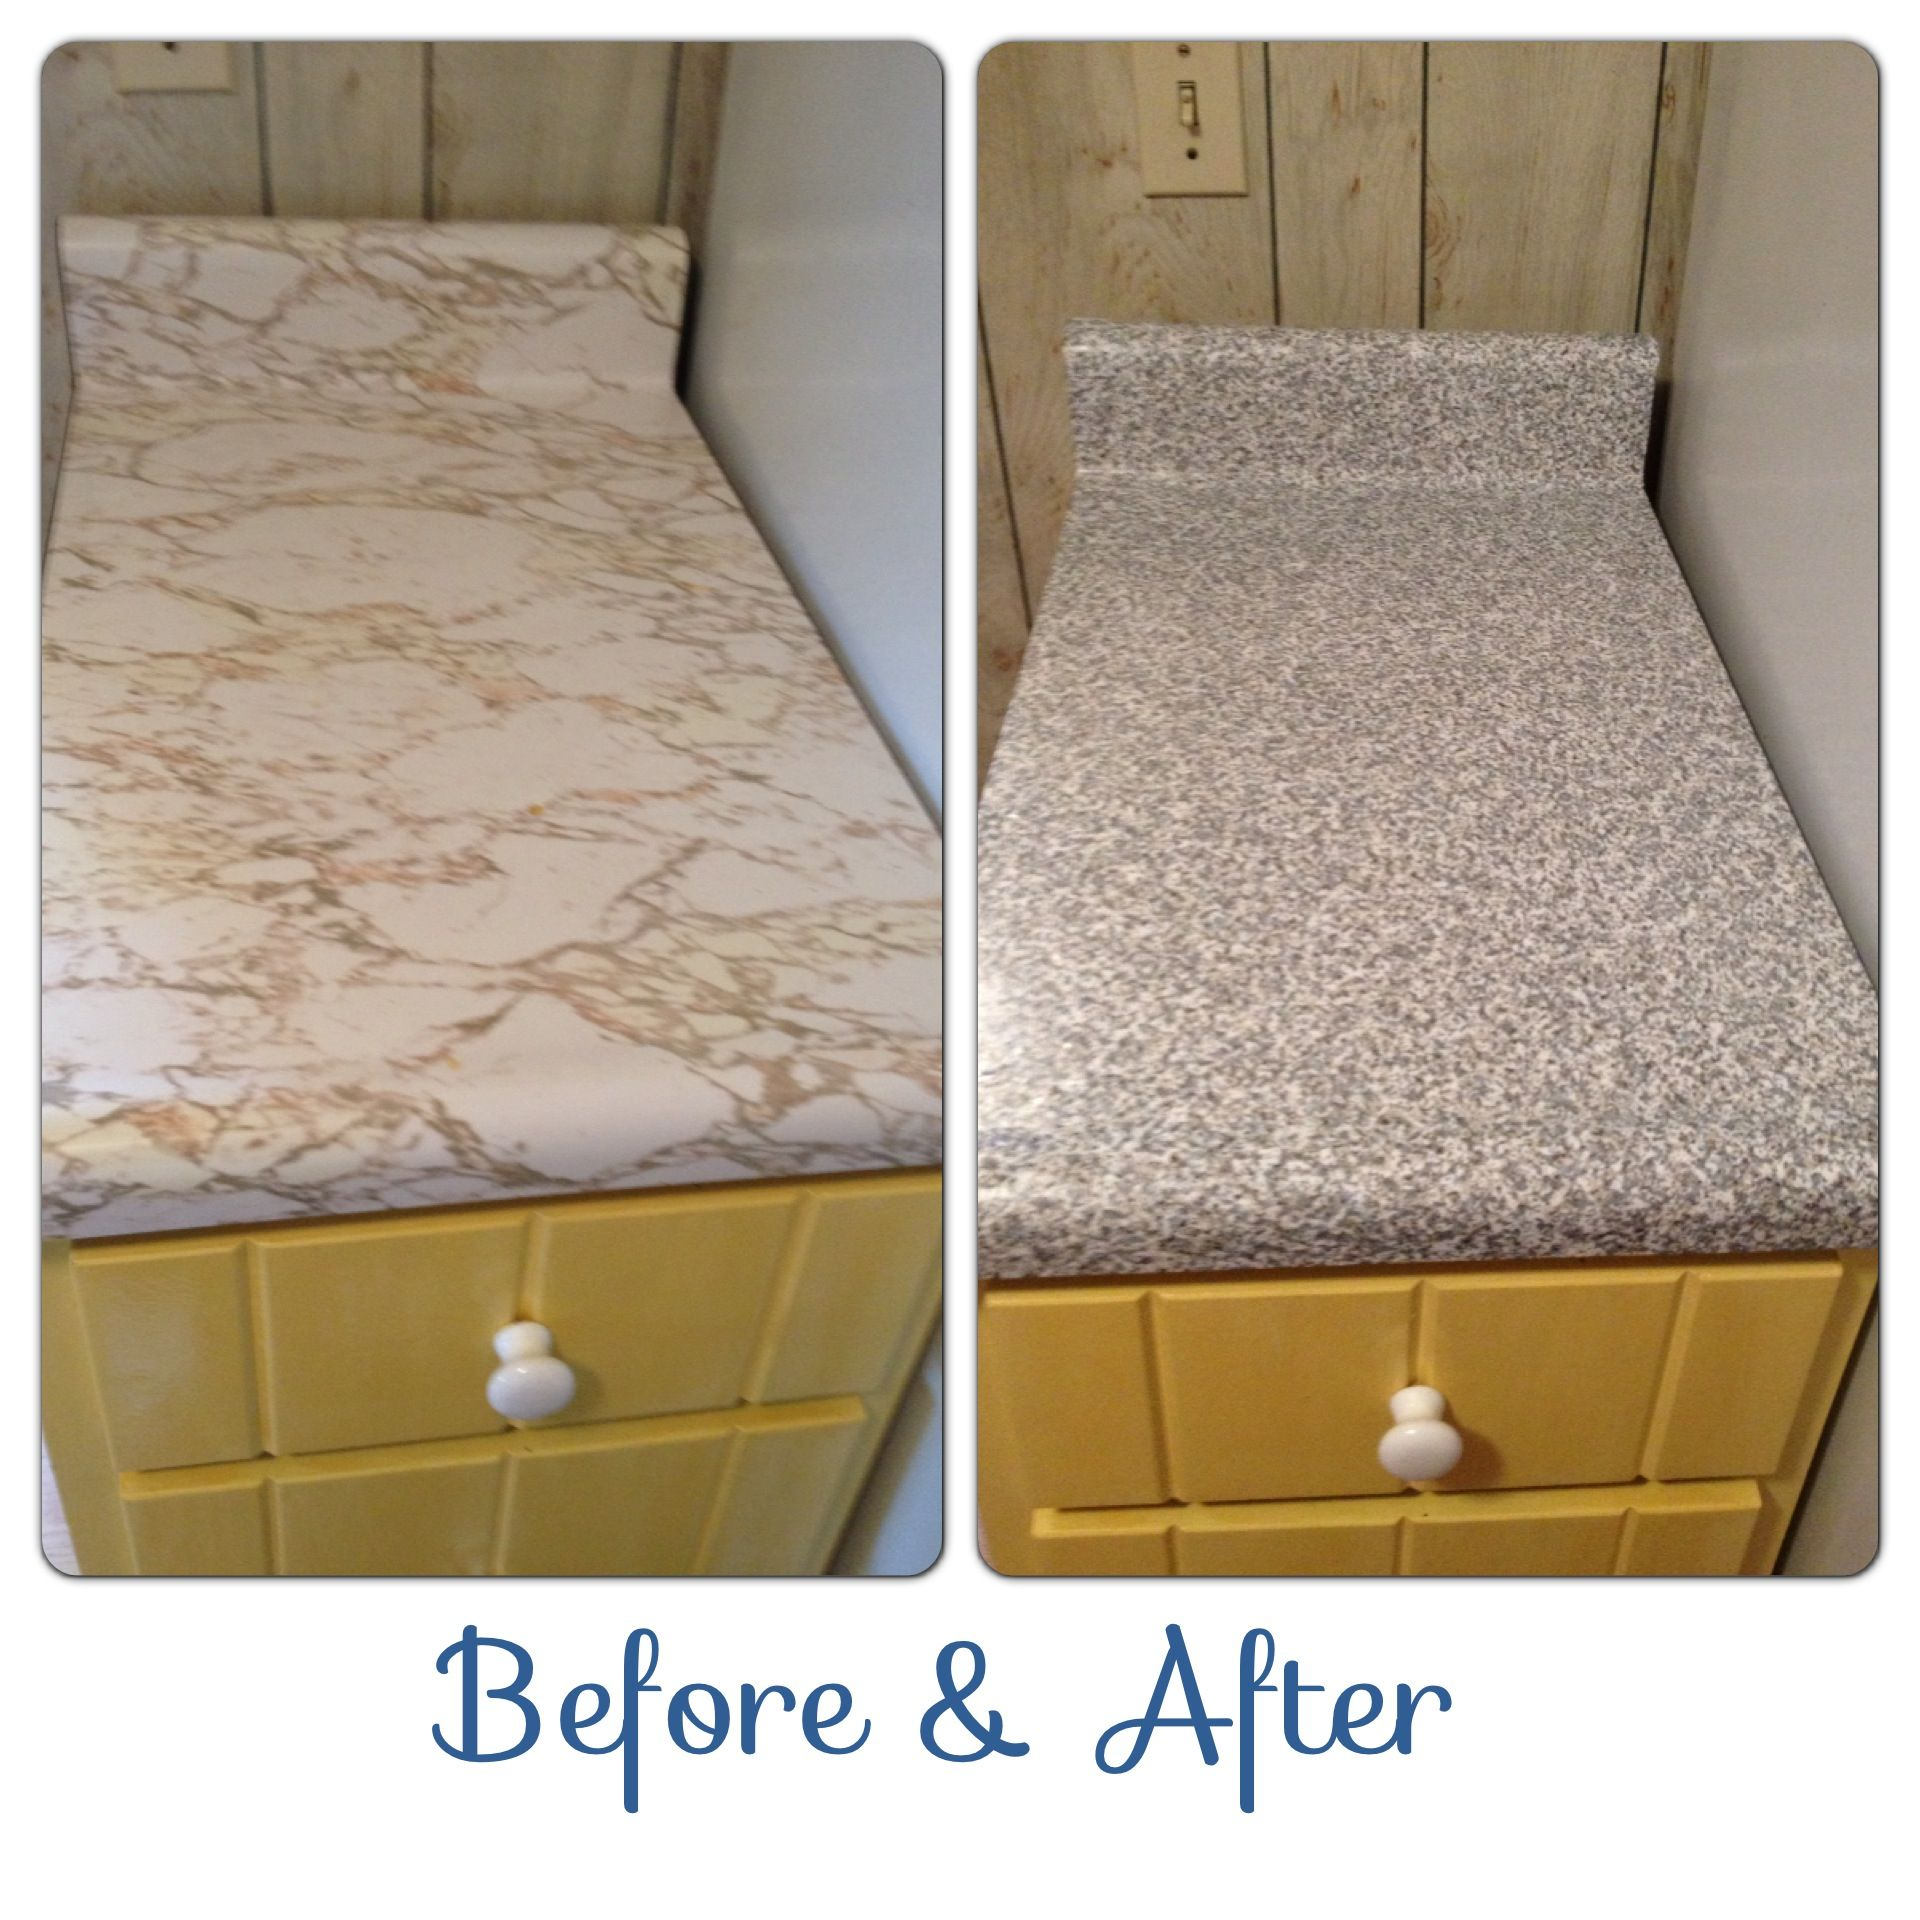 Granite Contact Paper Countertops Before After In A Rental House Now 4 44